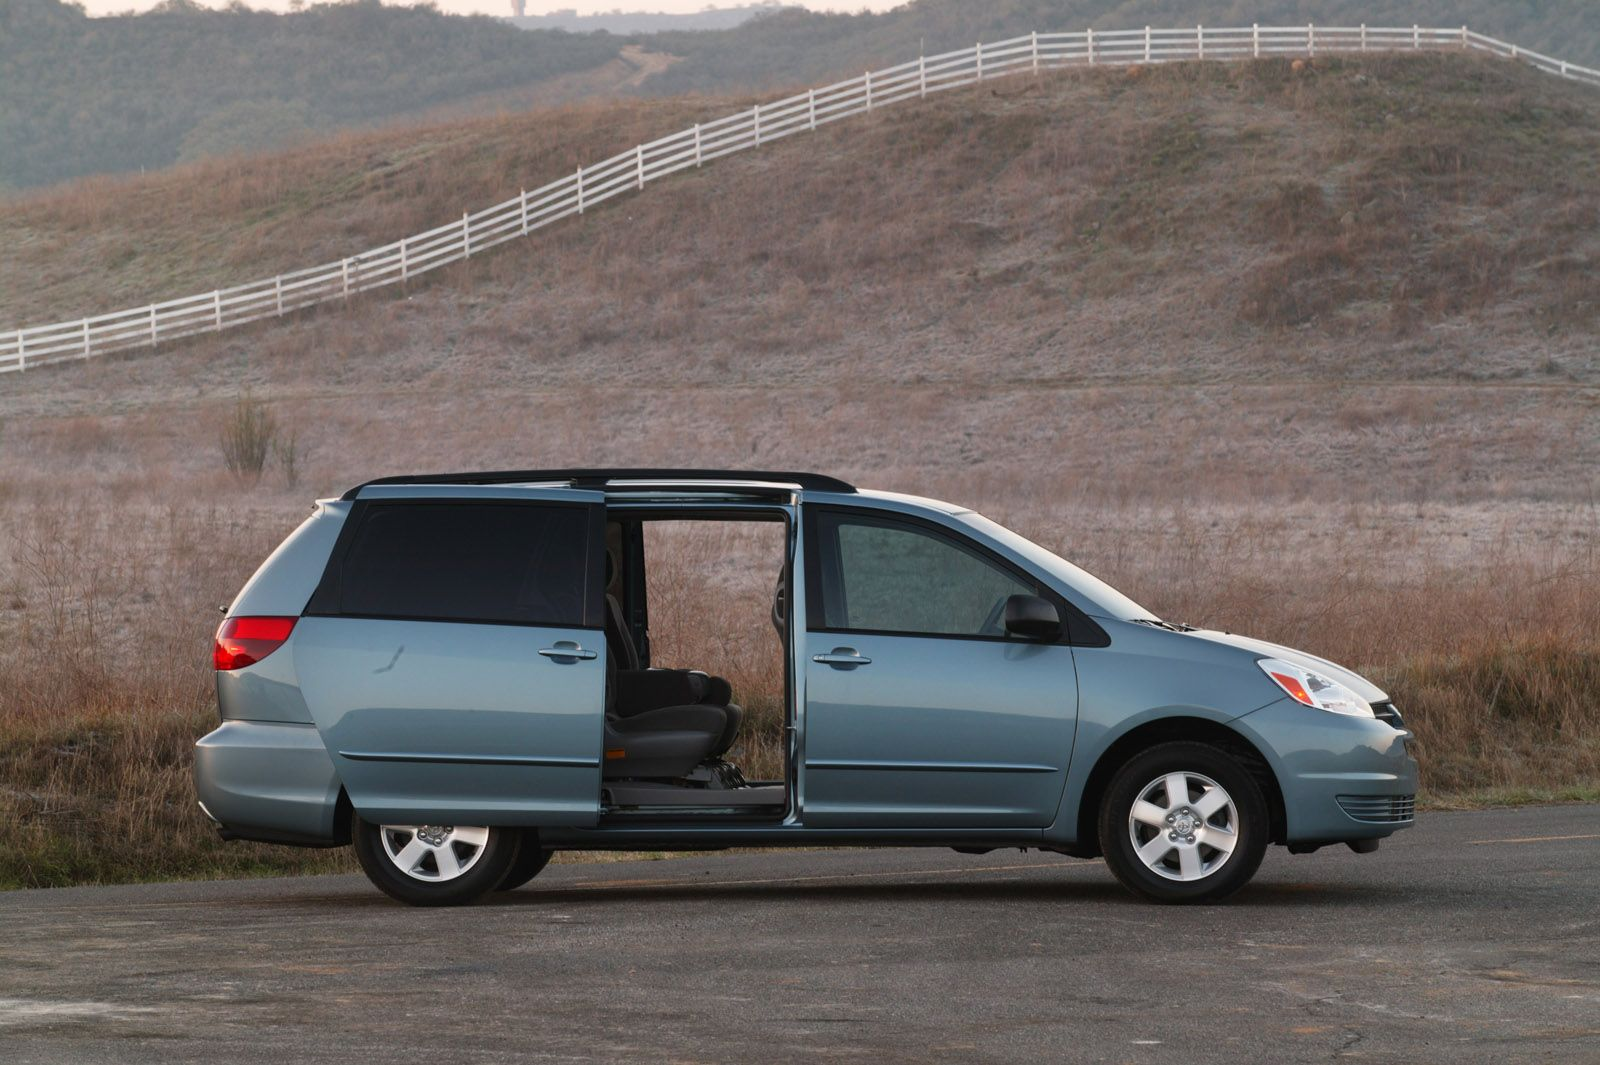 Toyota S Recalling Hundreds Of Thousands Of Sienna Minivans For Rollaway Risk Carscoops Mini Van Toyota Nissan Quest